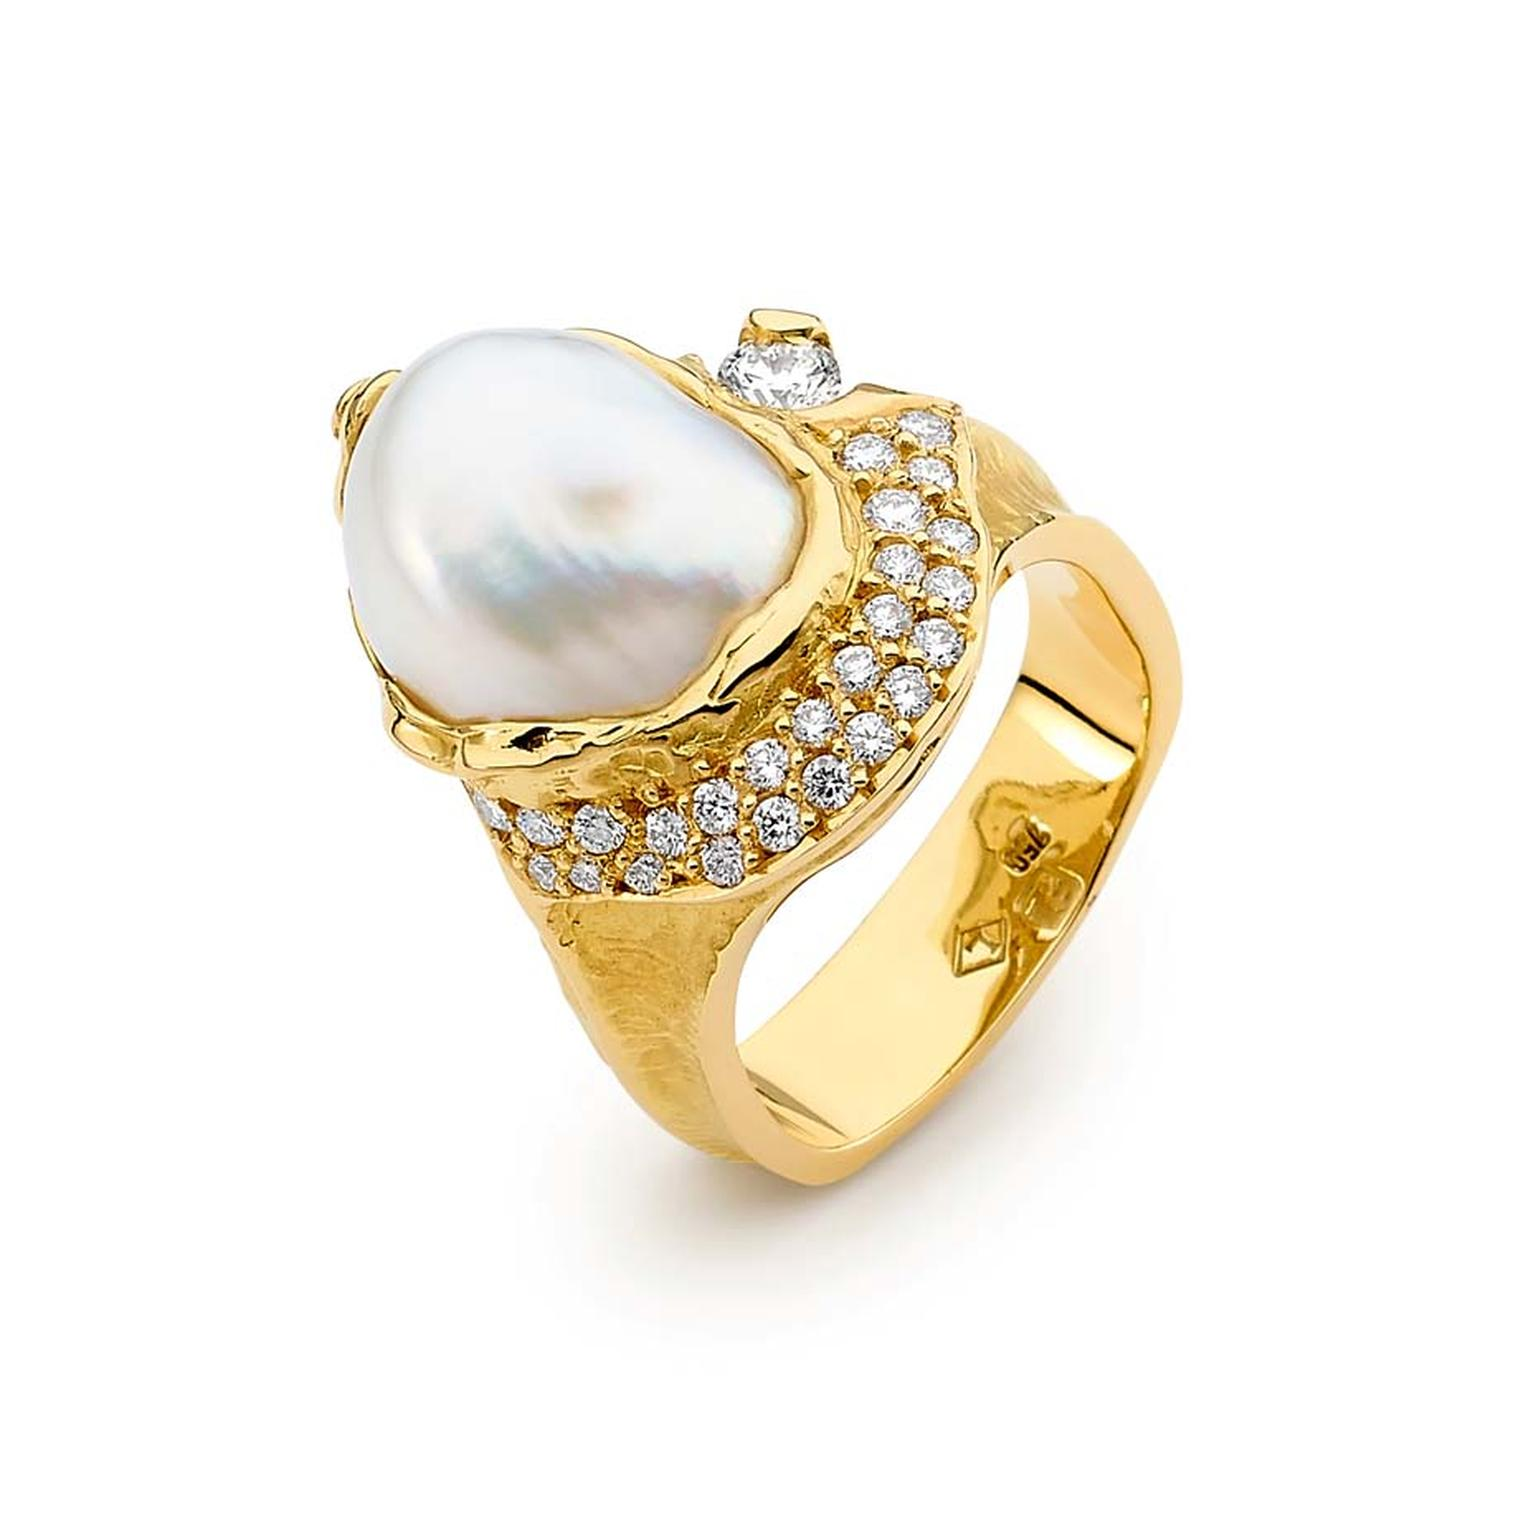 Australian Pearls_Linneys_18ct yellow gold Australian South Sea seedless pearl and diamond ring $7,900.jpg